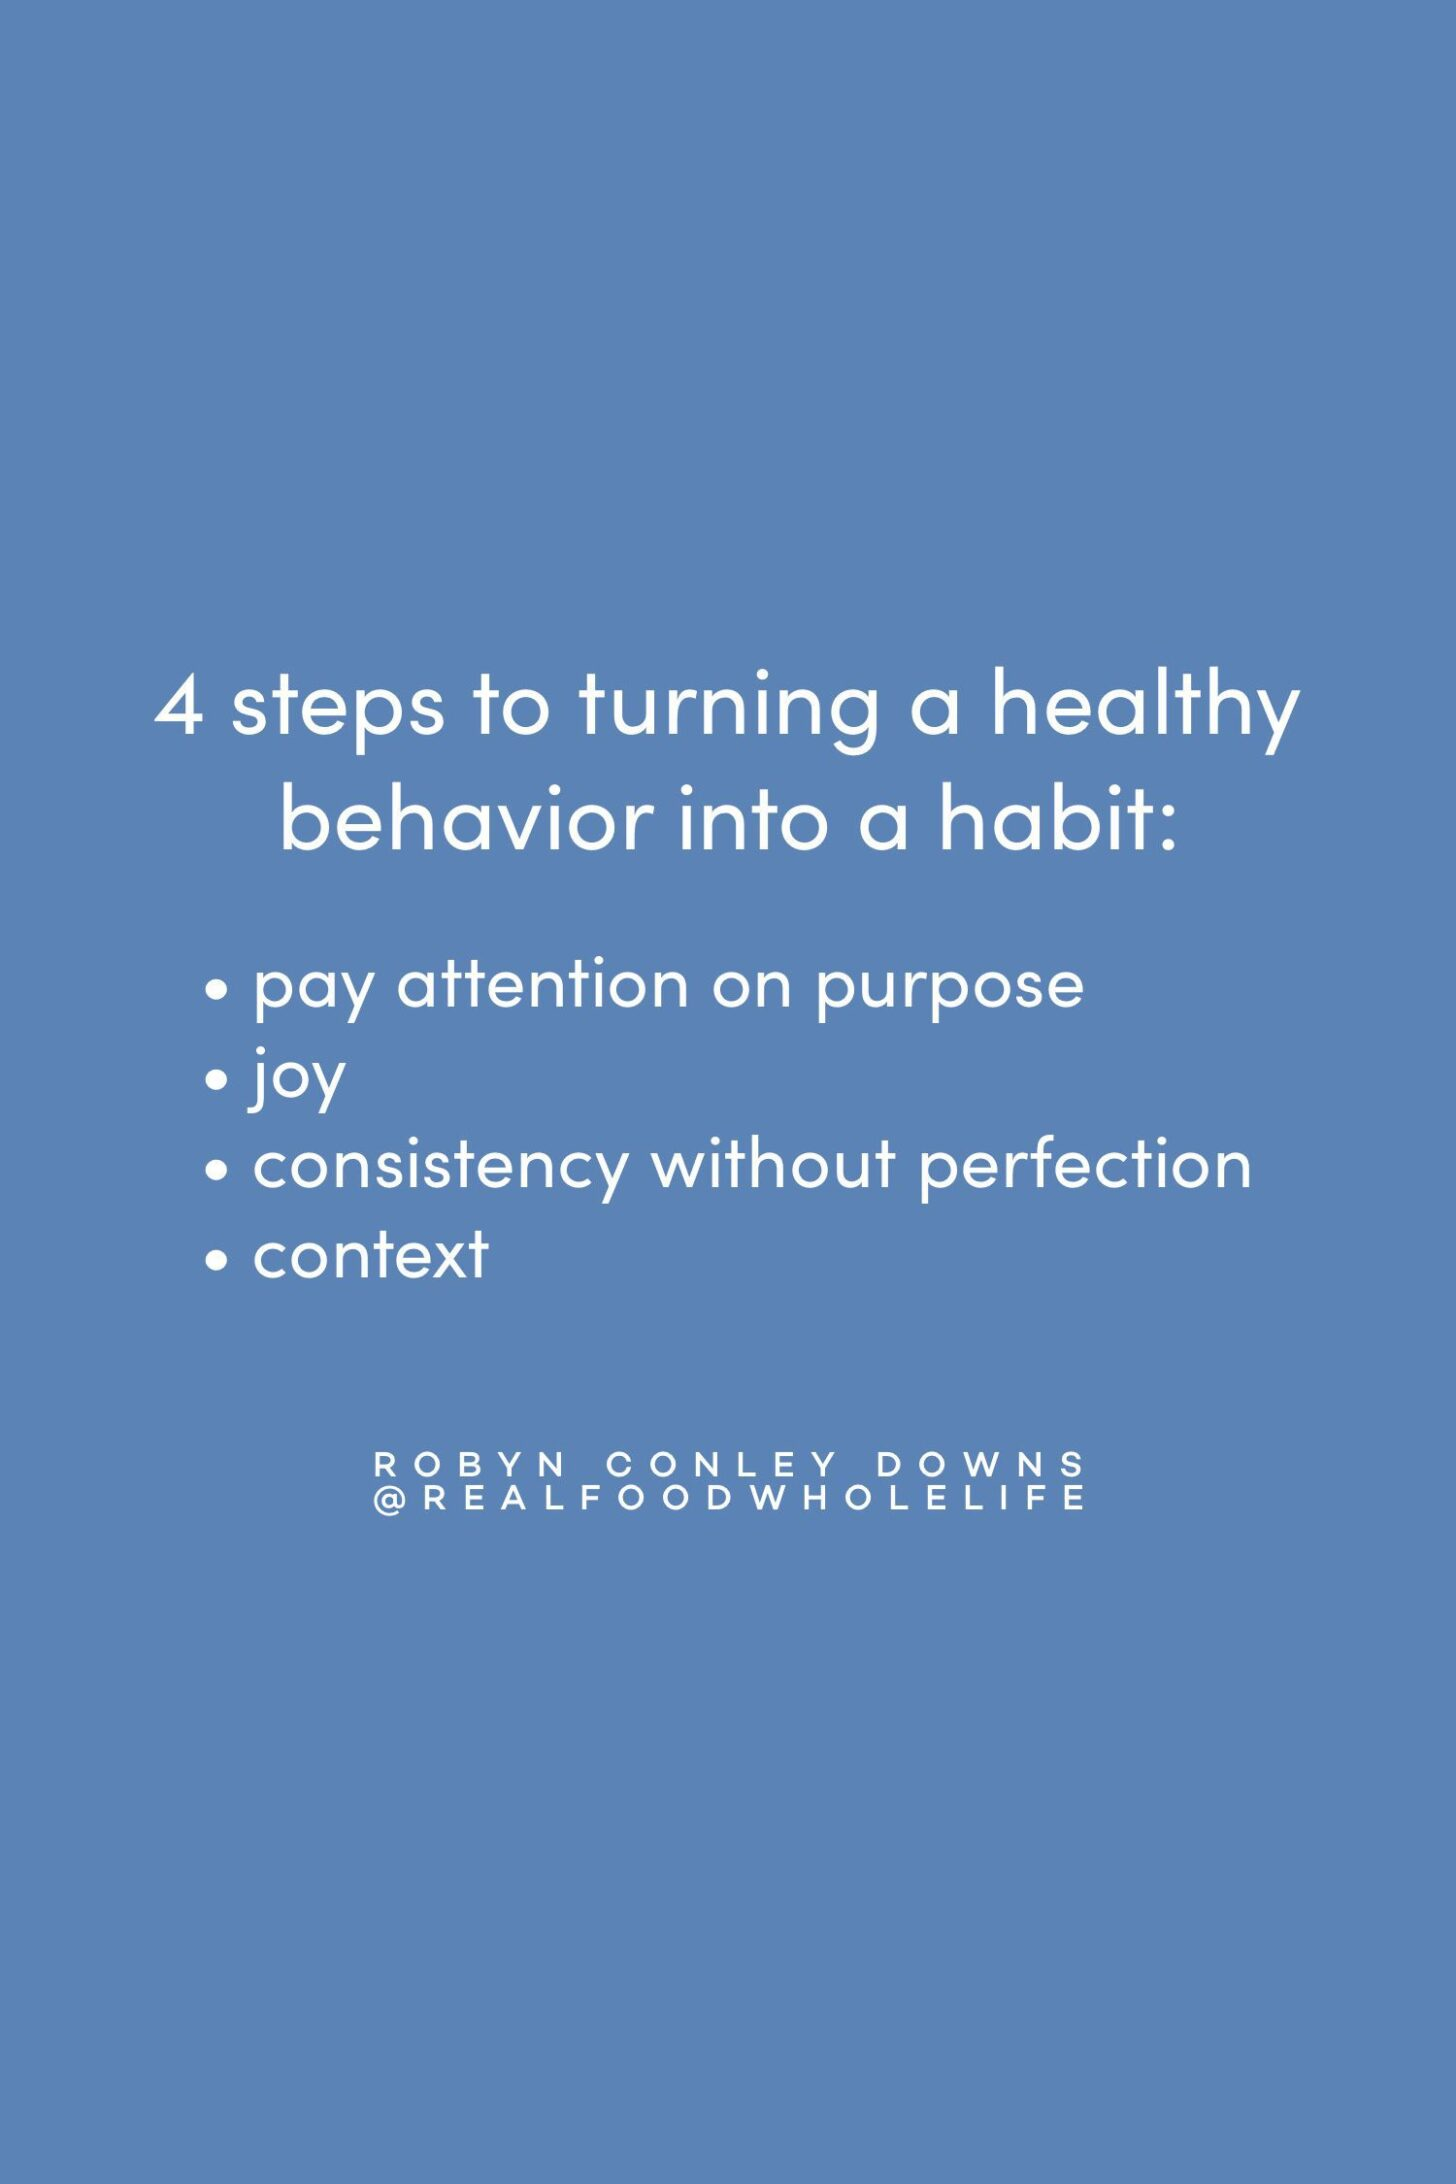 Turning a healthy behavior into a habit in four steps #realfoodwholelife #feelgoodeffectpodcast #motivational #behaviorchange #healthyhabits #healthylife #wellnesstips